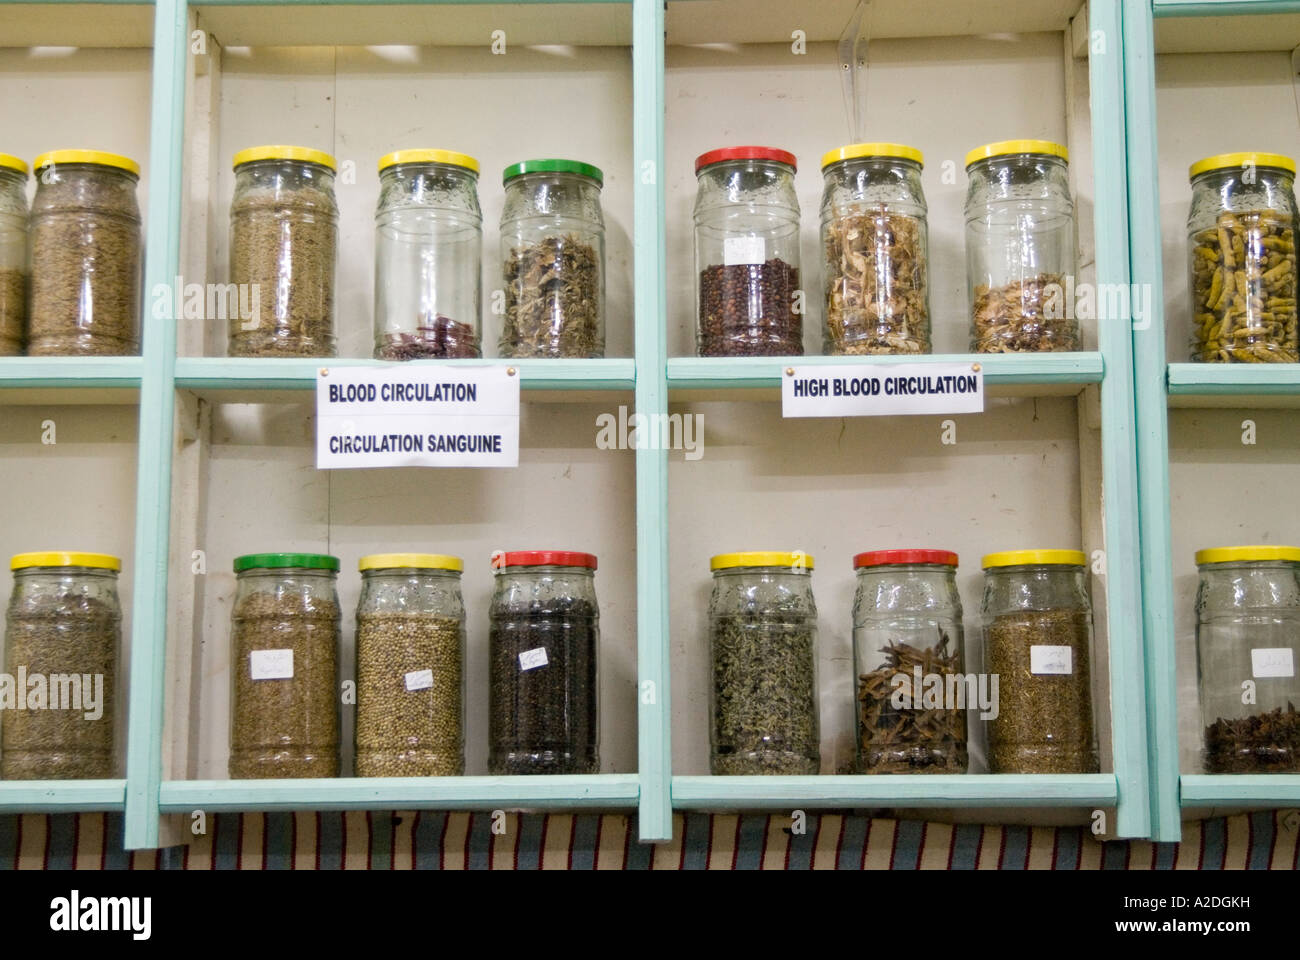 Shop selling herbal remedies and alternative medicines in glass jars in Morocco, Africa - Stock Image